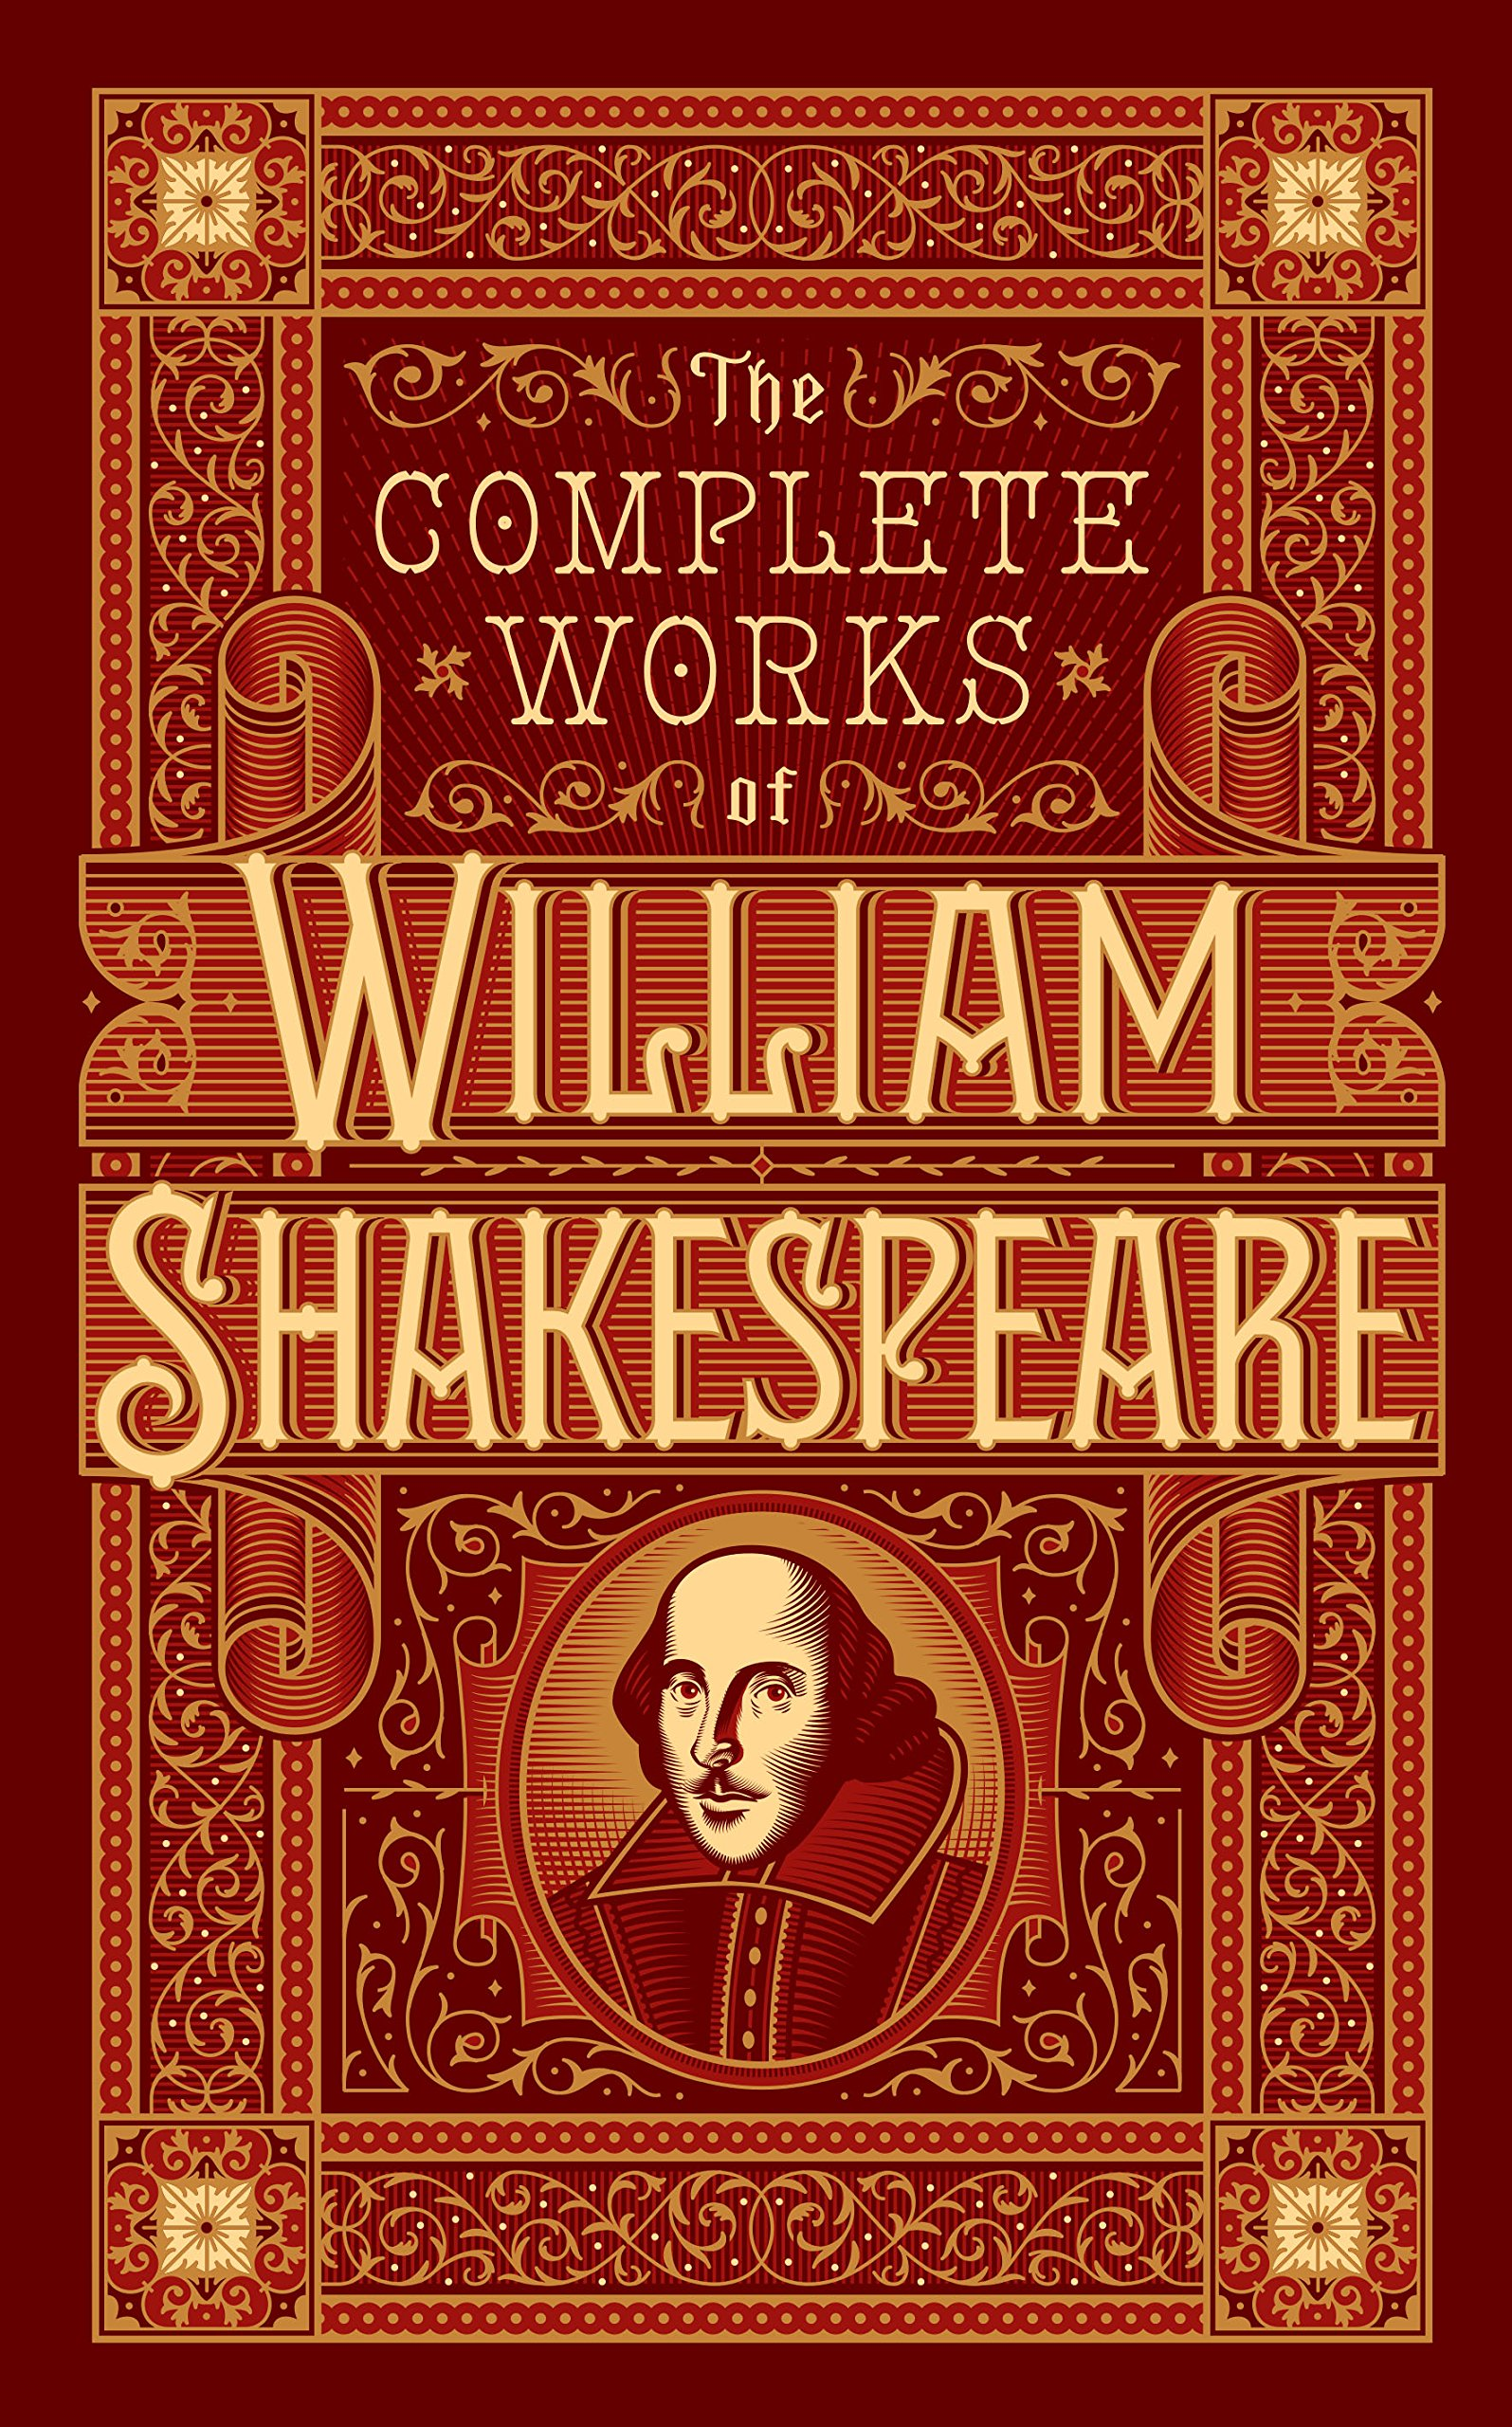 william shakespeare works